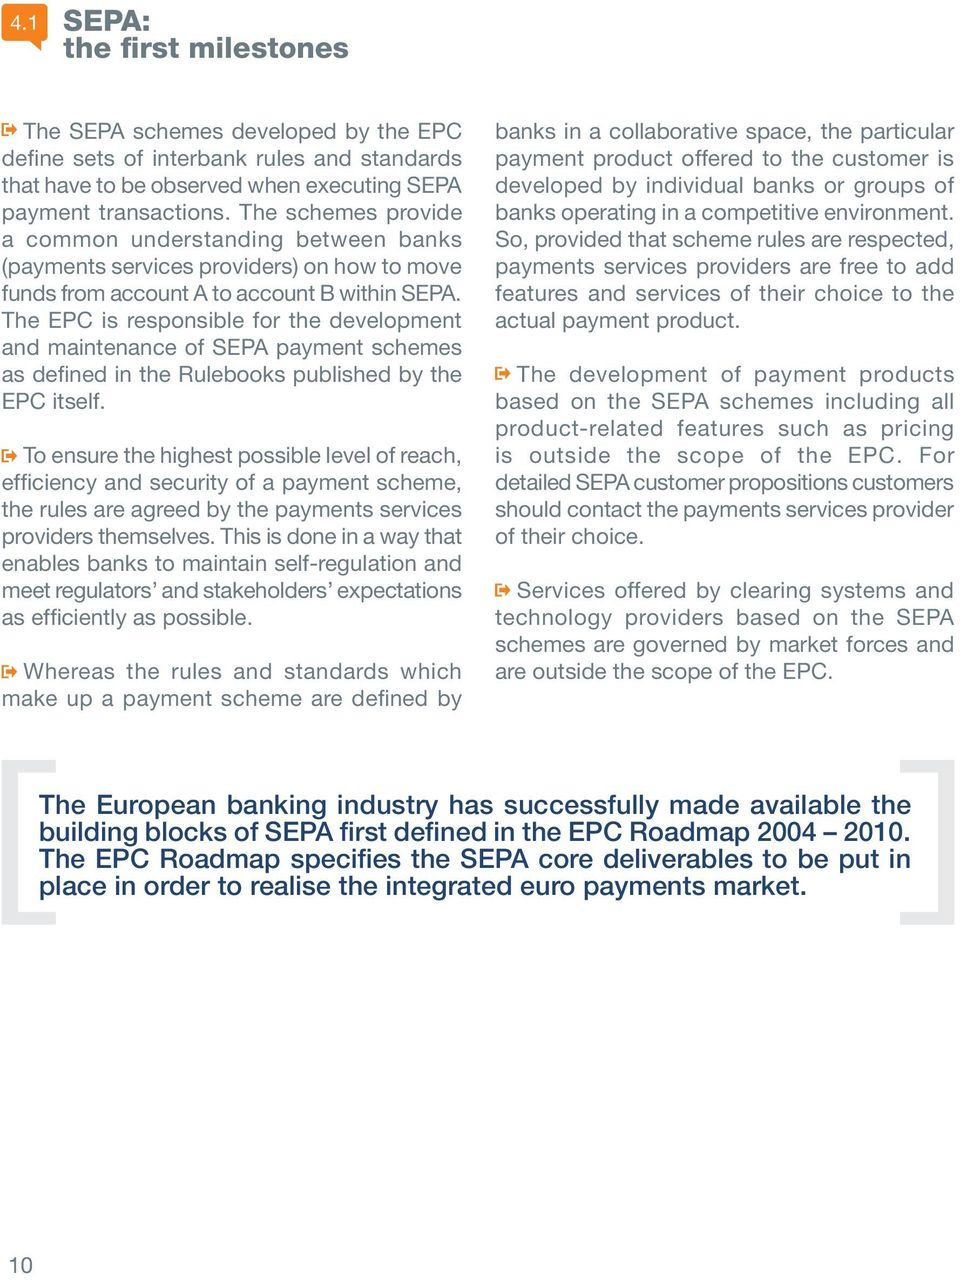 The EPC is responsible for the development and maintenance of SEPA payment schemes as defined in the Rulebooks published by the EPC itself.